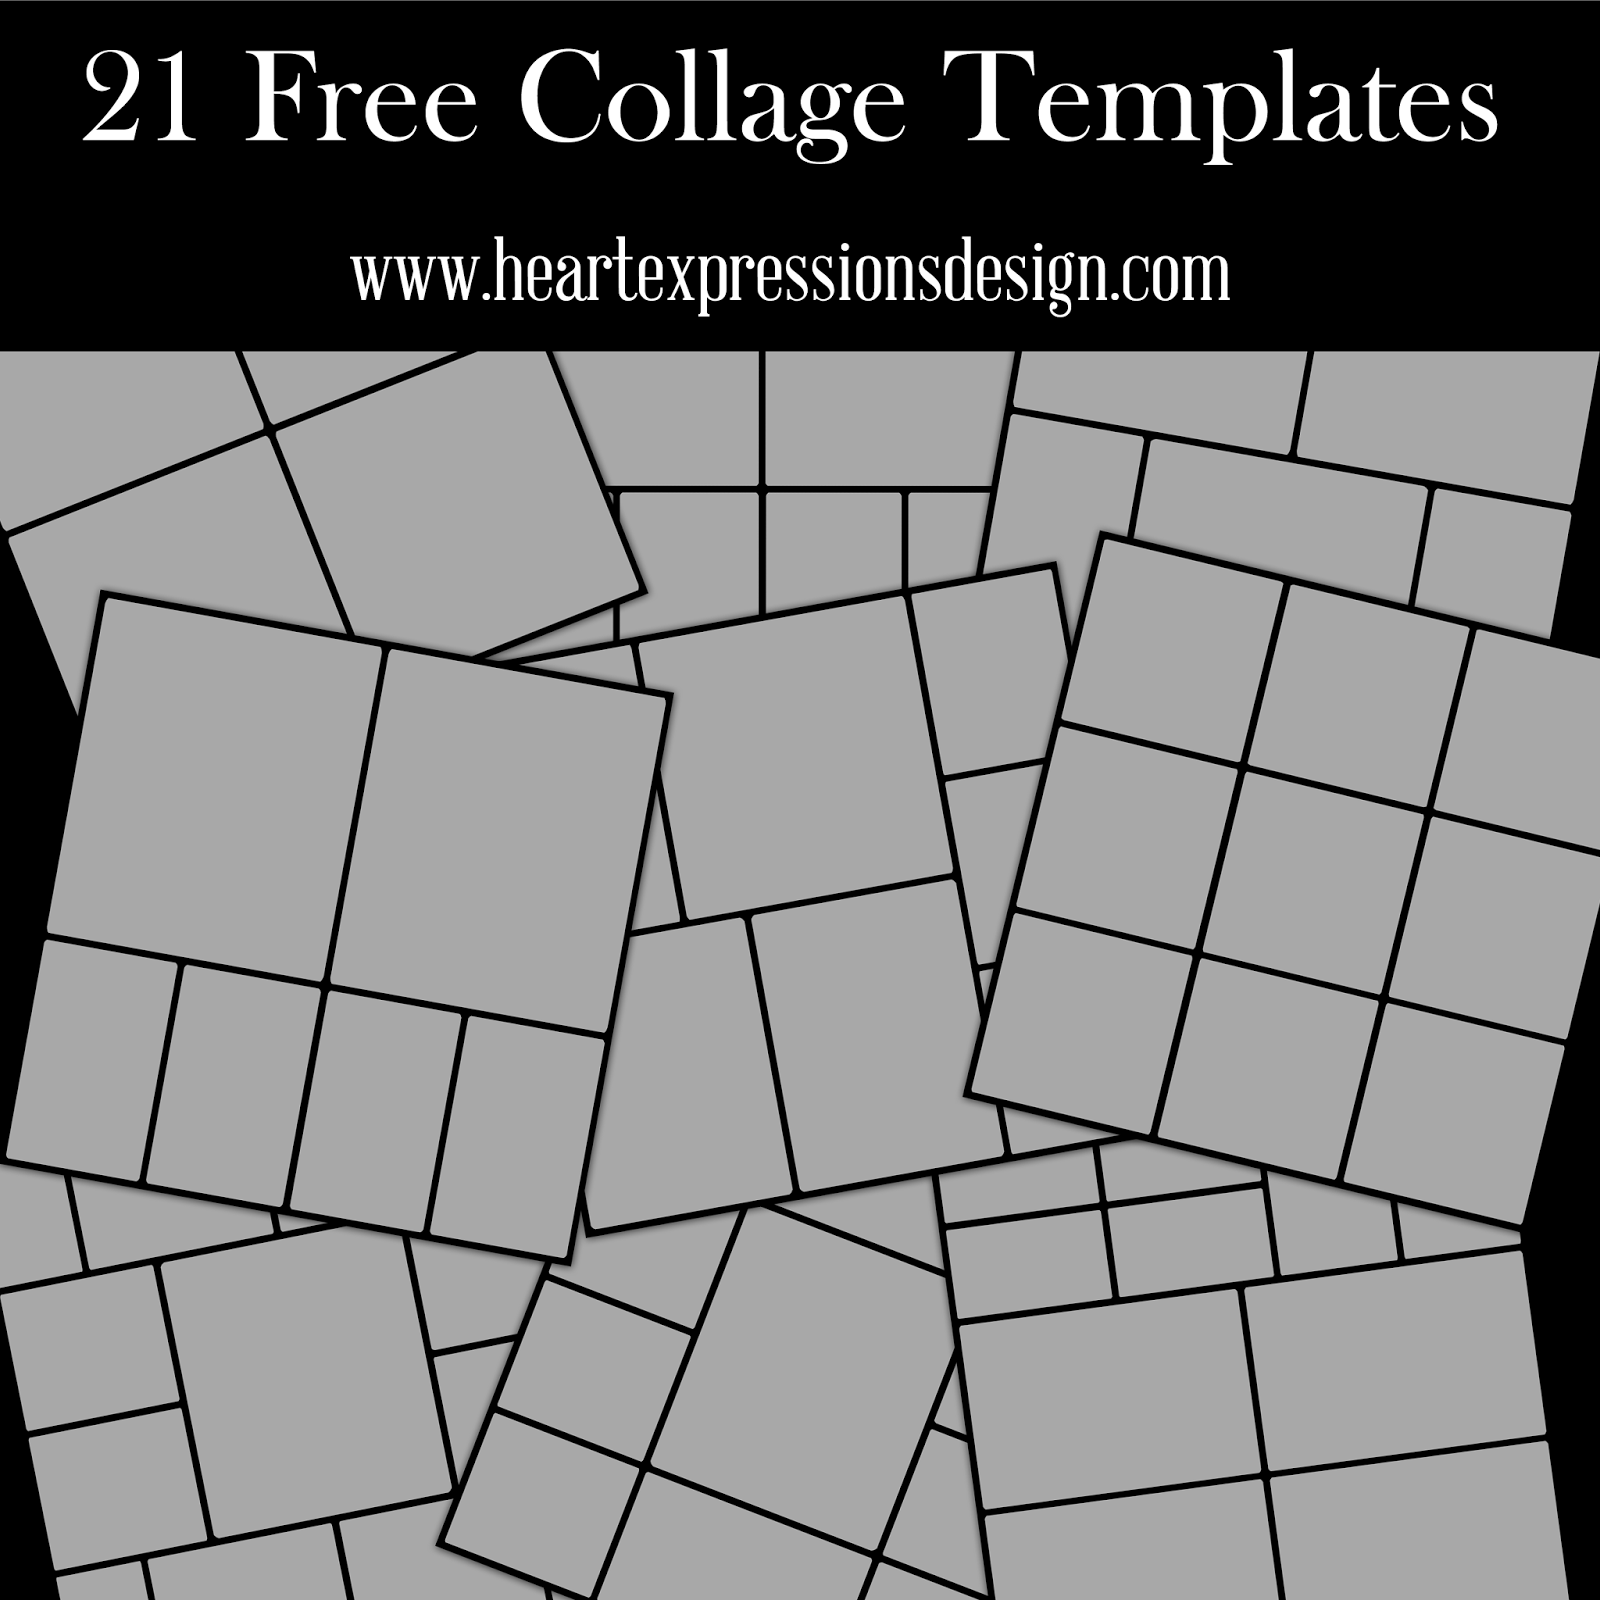 Photoshop collage templates for Collage maker templates free download